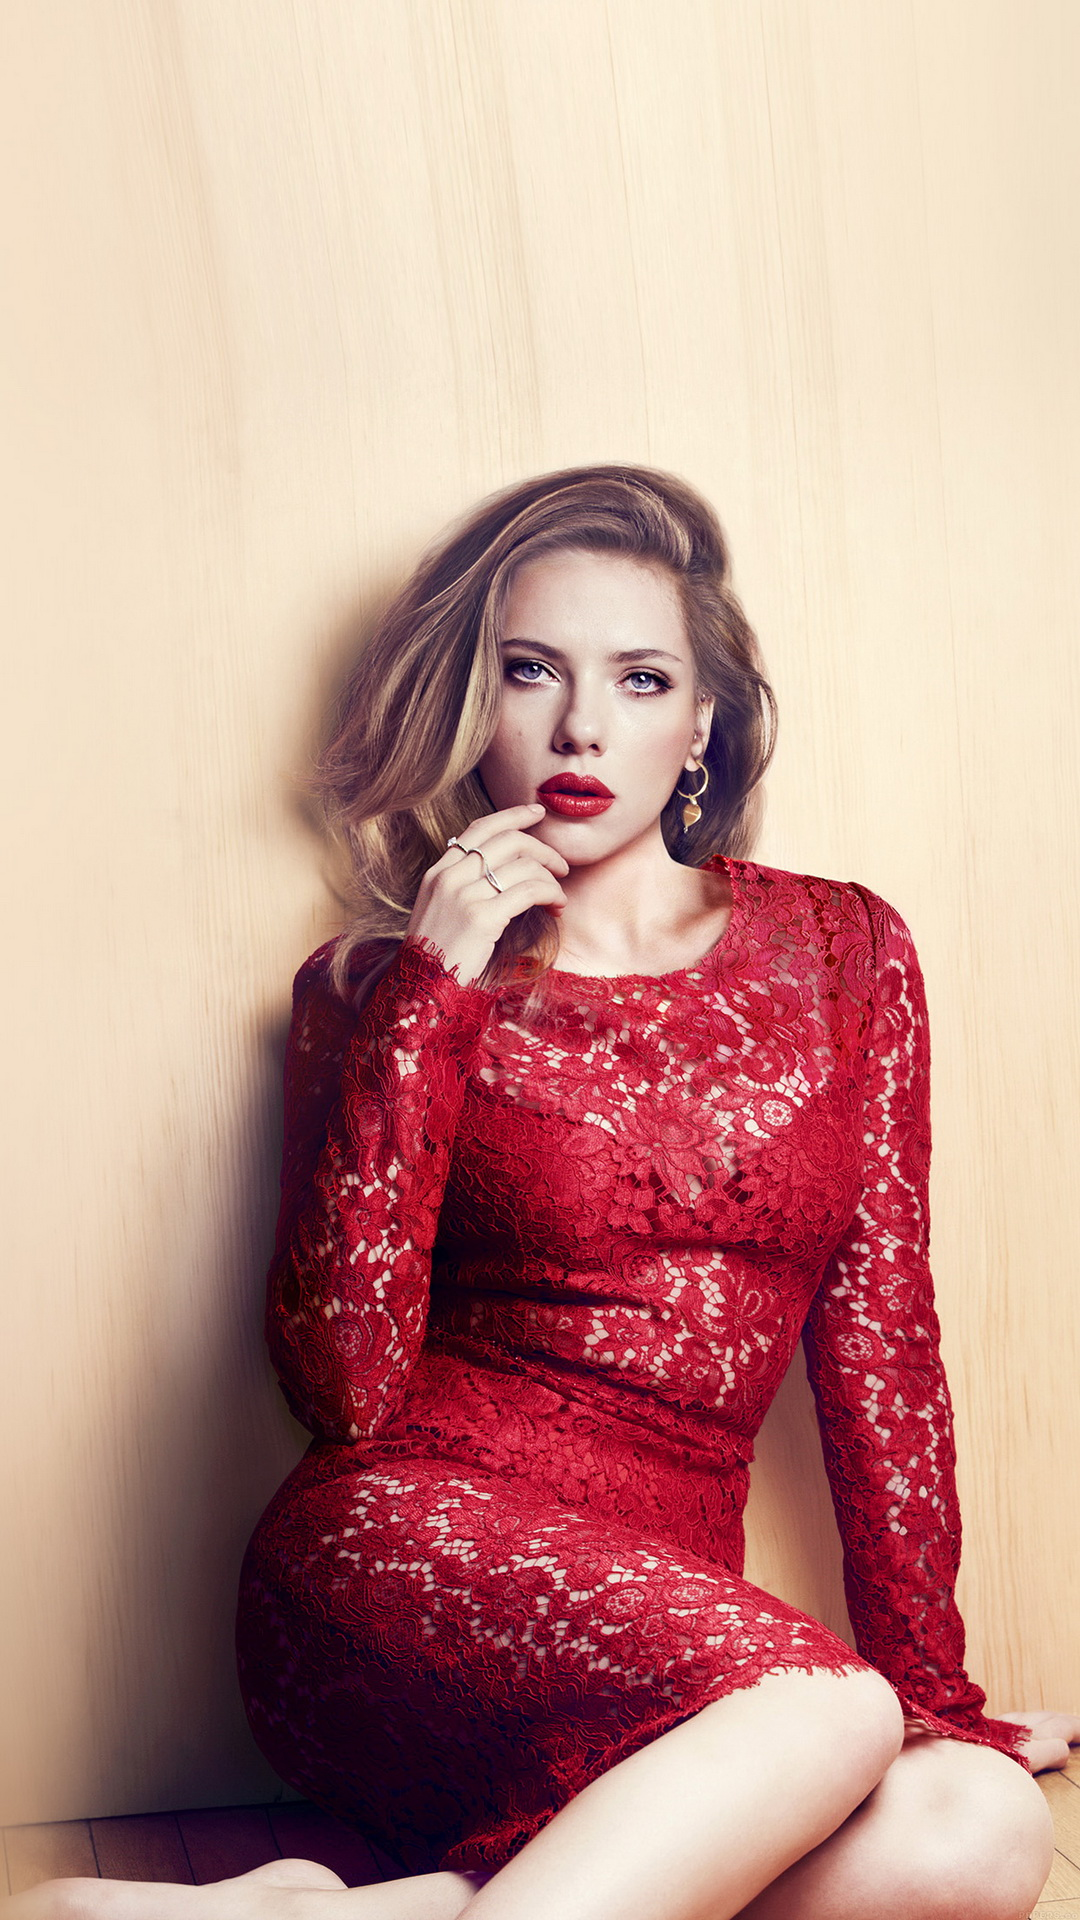 Scarlett Johansson Wallpaper: Scarlett Johansson Red Dress